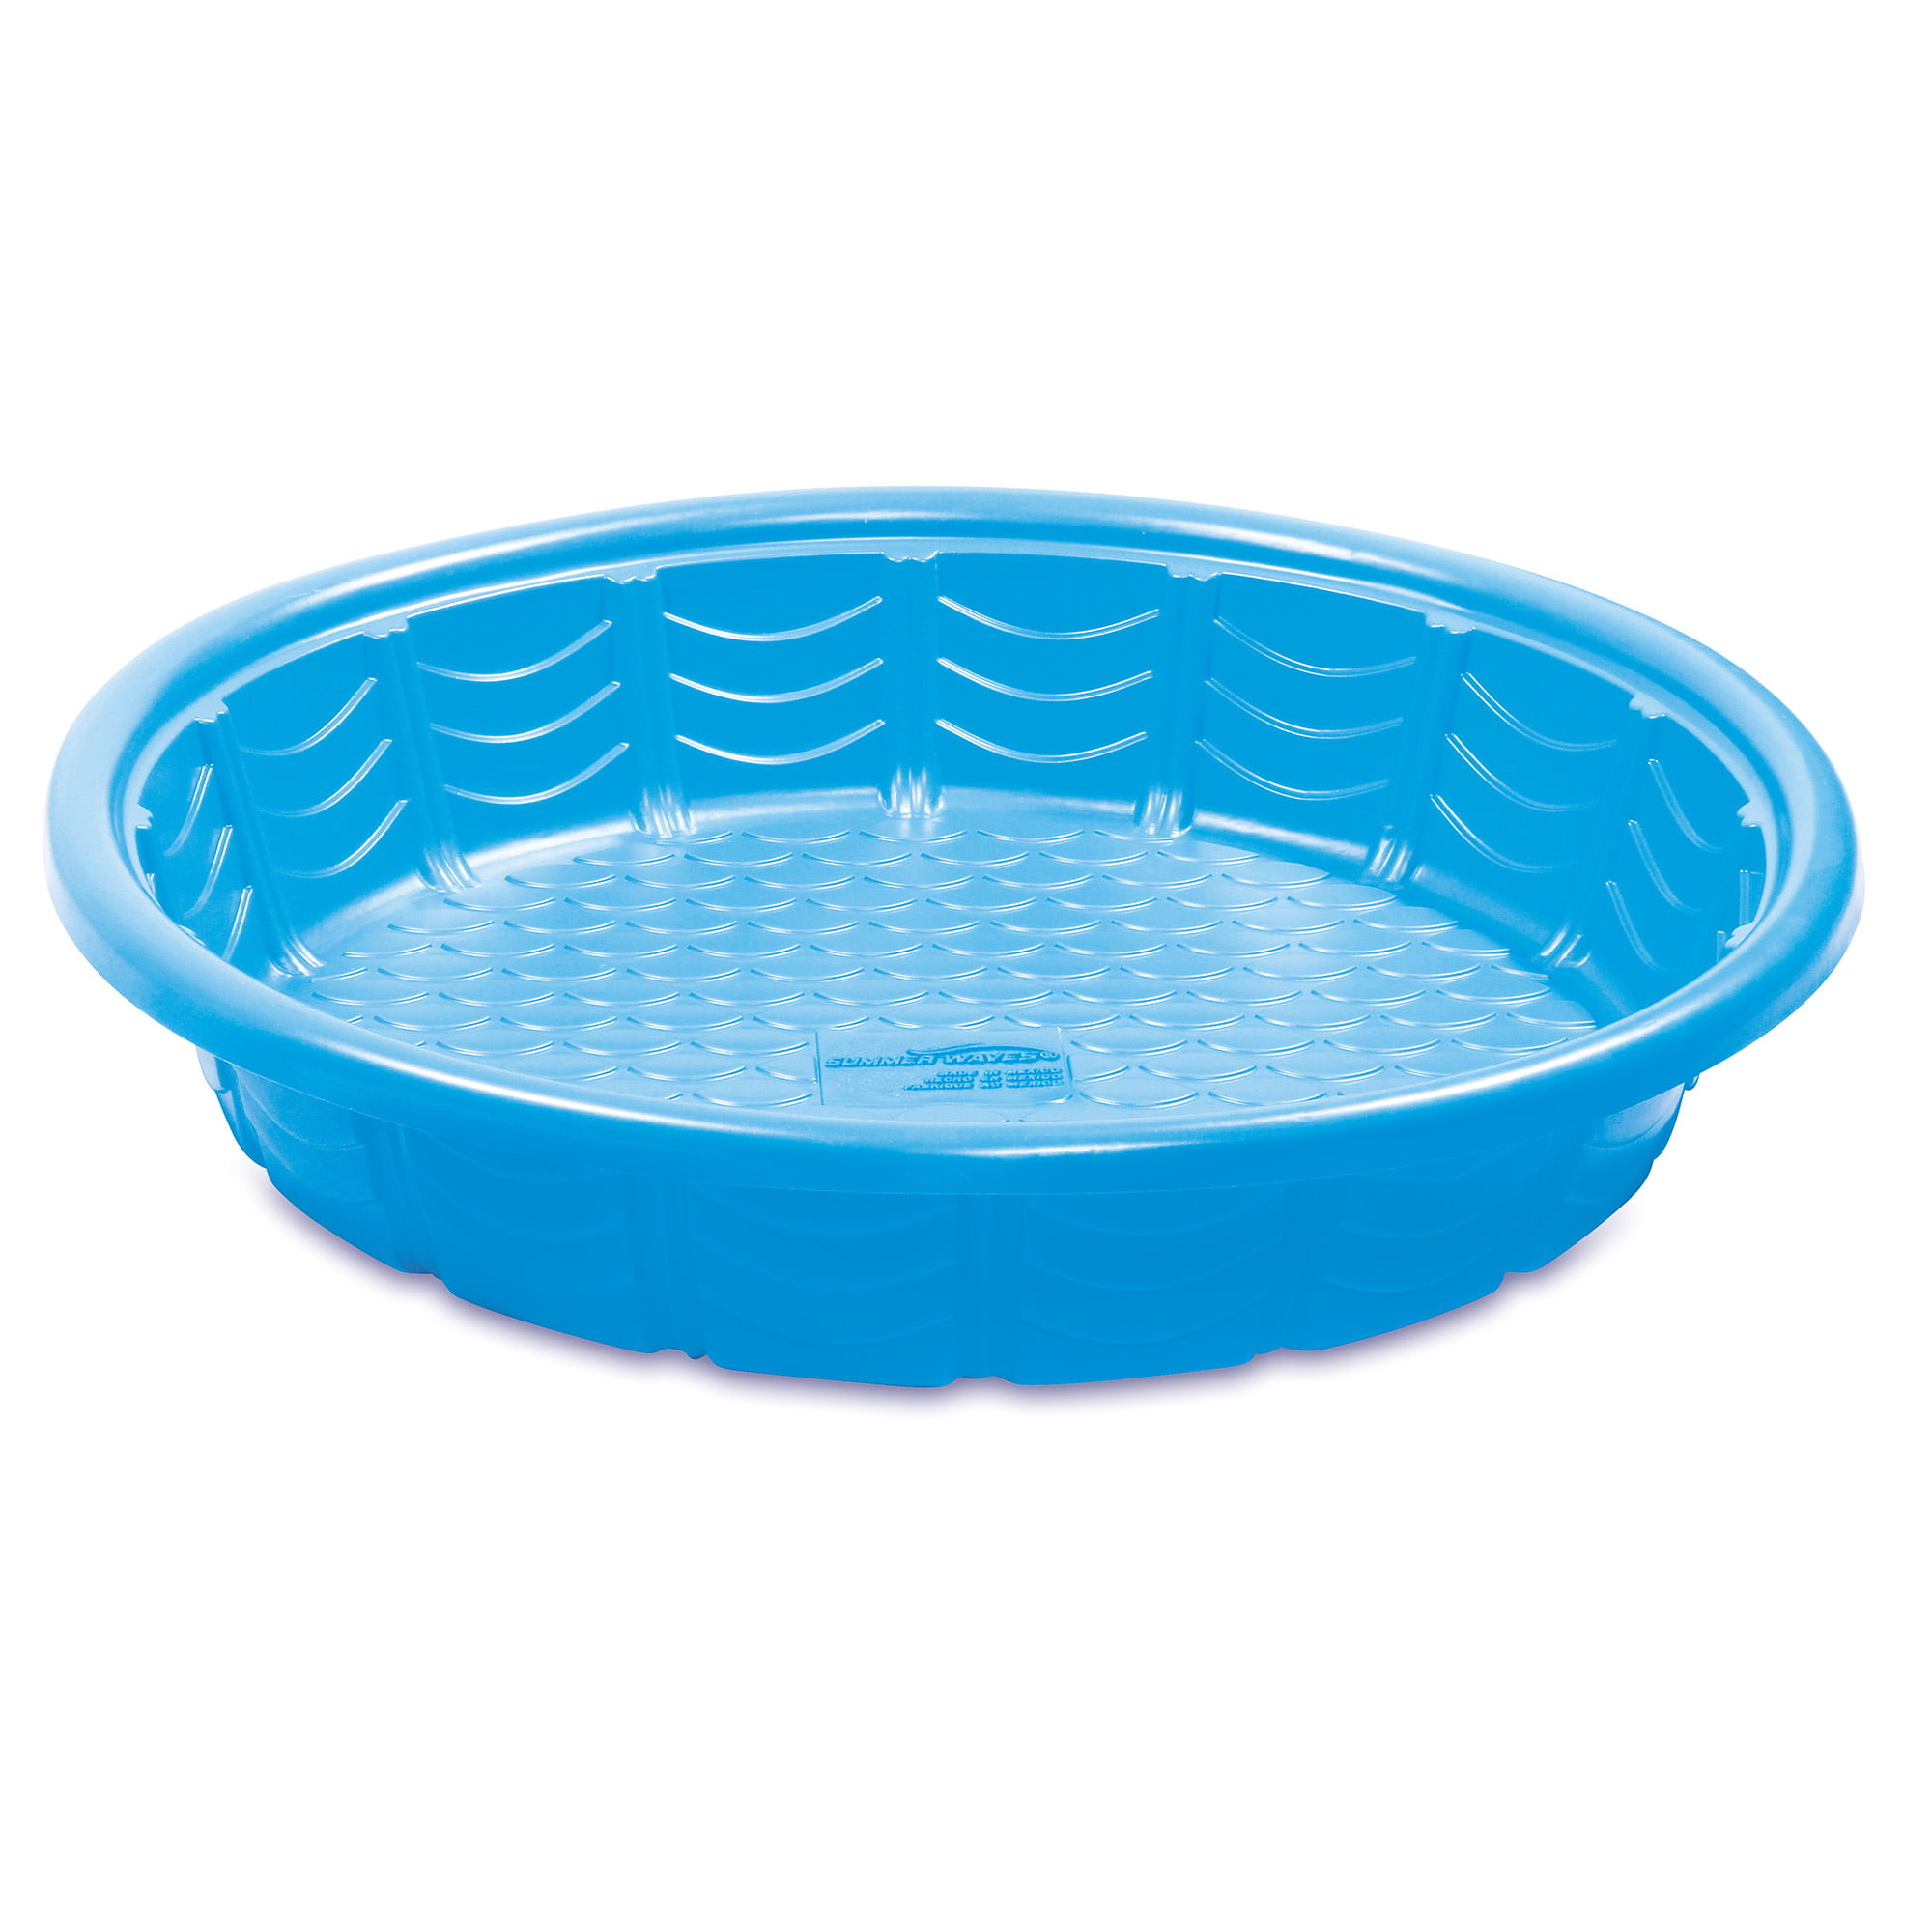 Summer Waves 45in Plastic Kiddie Wading Pool Assorted Colors Walmart Com Walmart Com